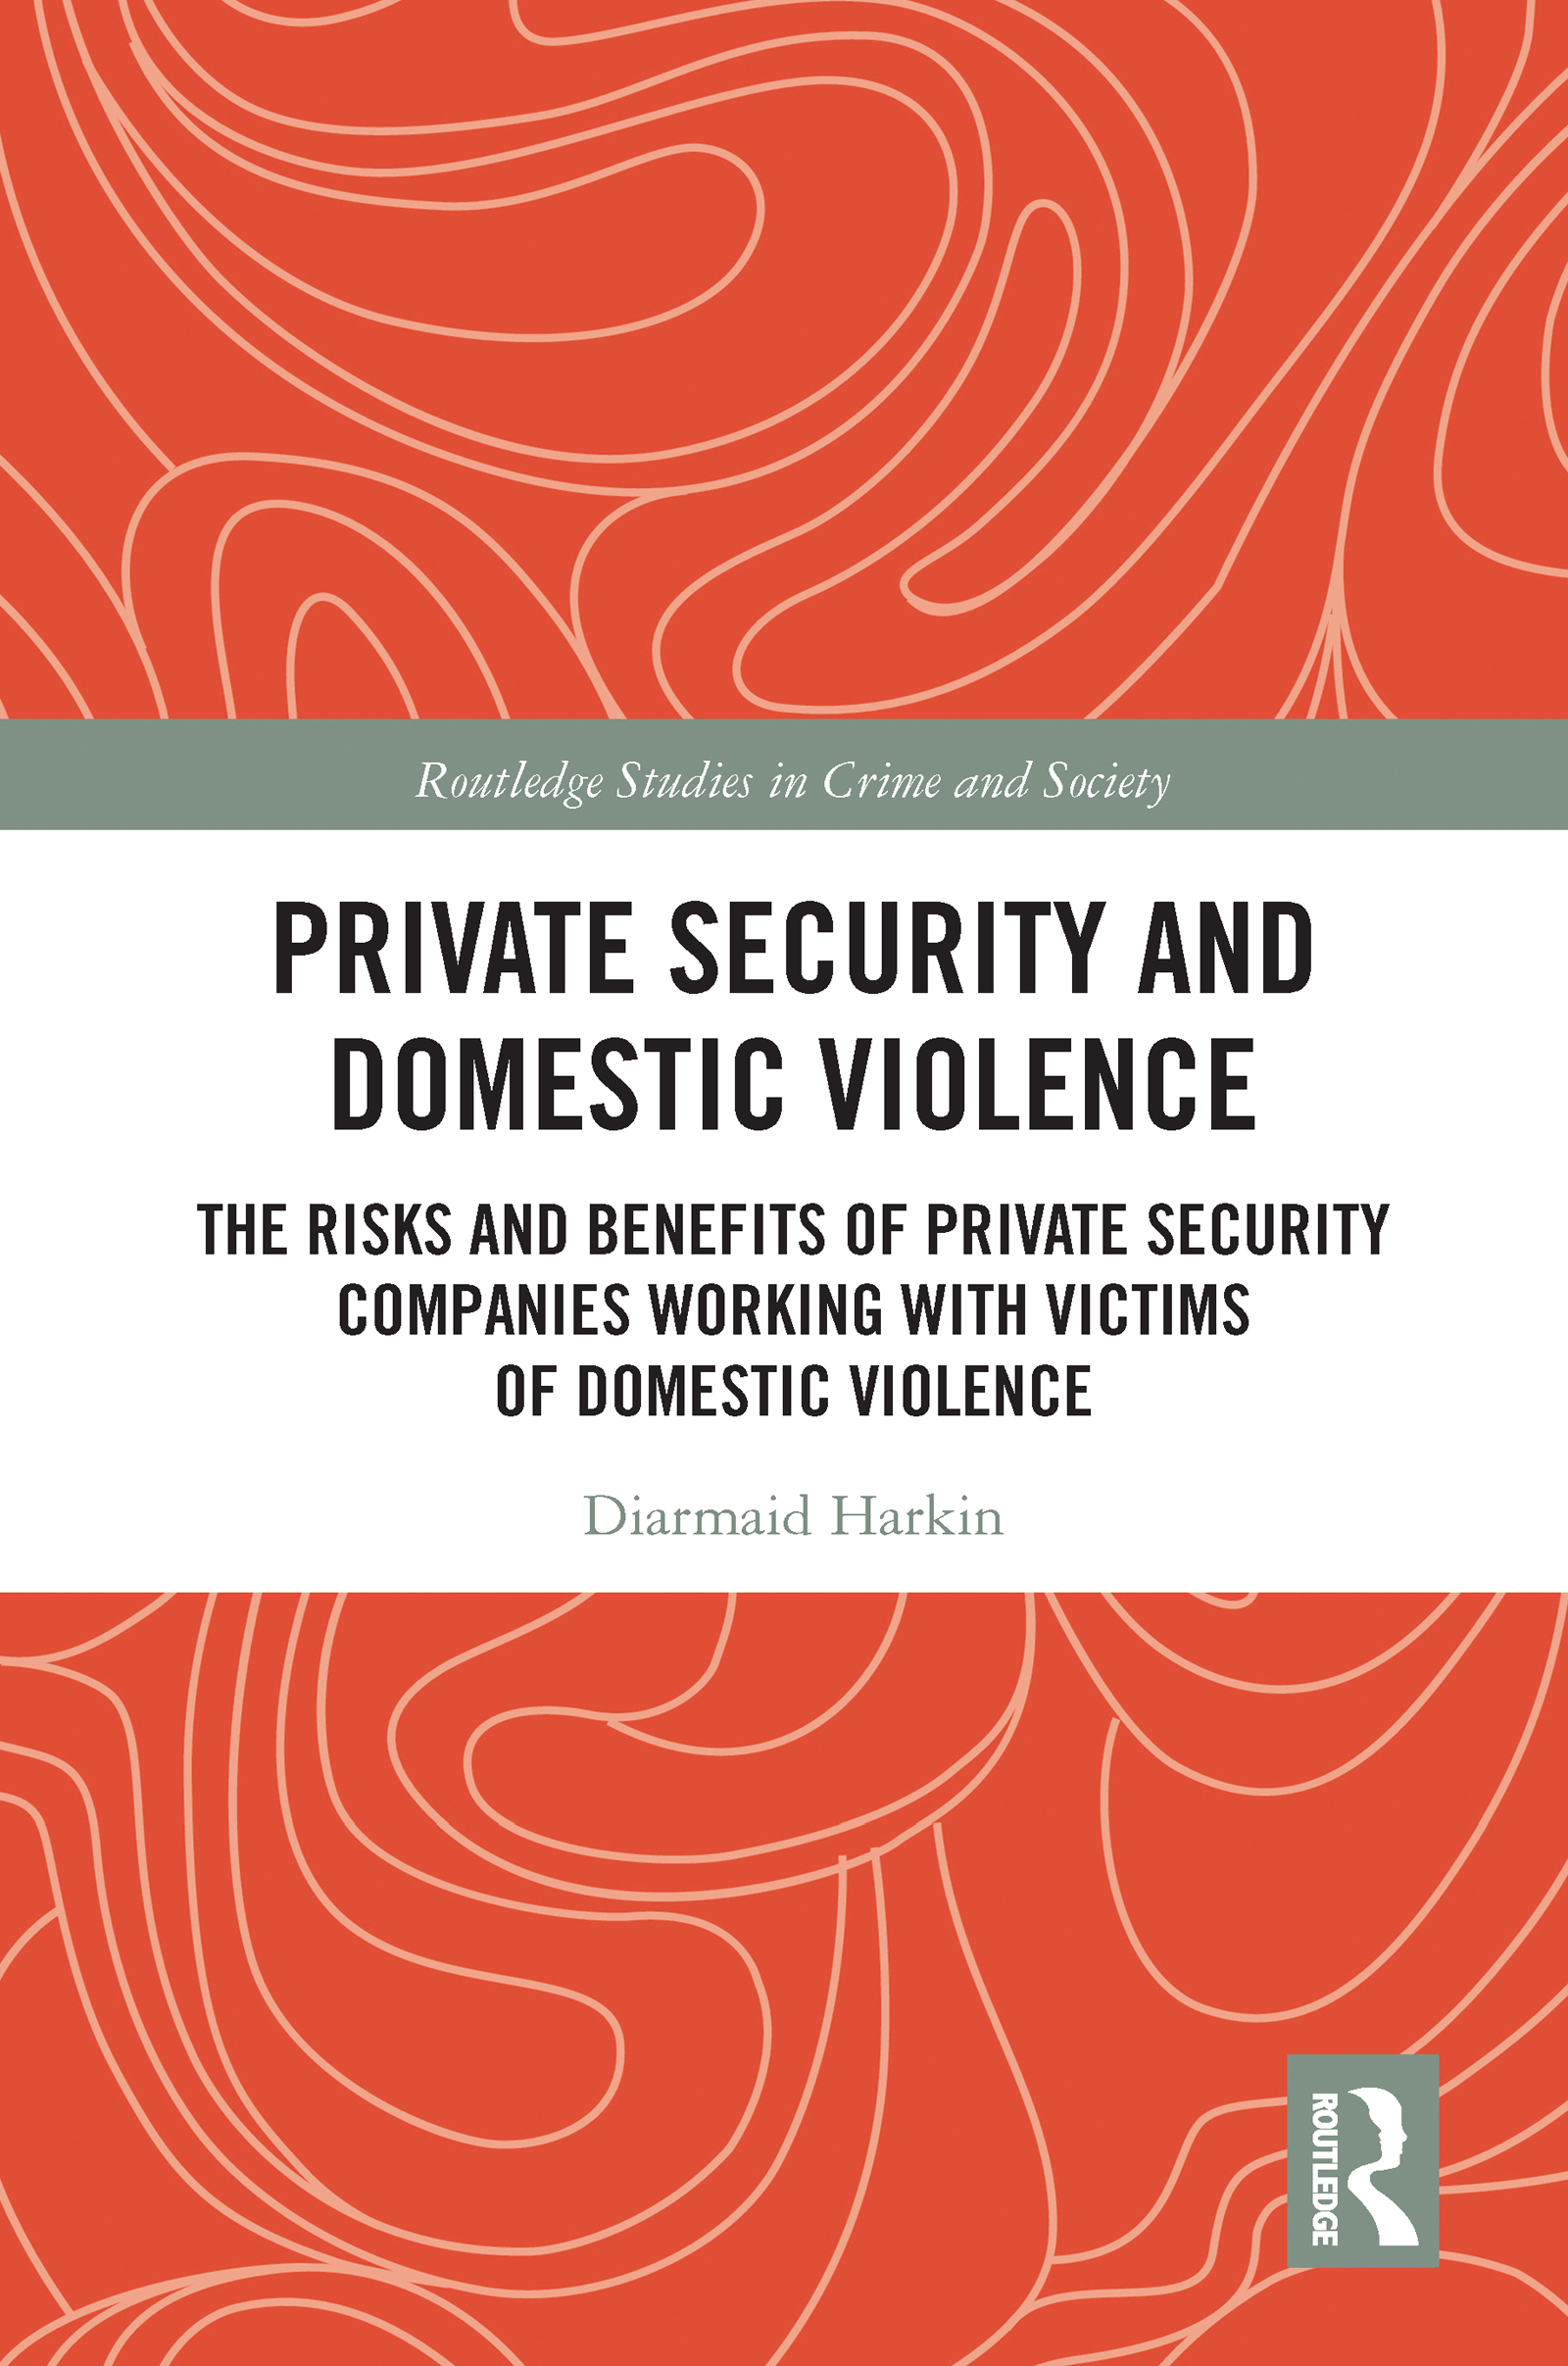 Private Security and Domestic Violence